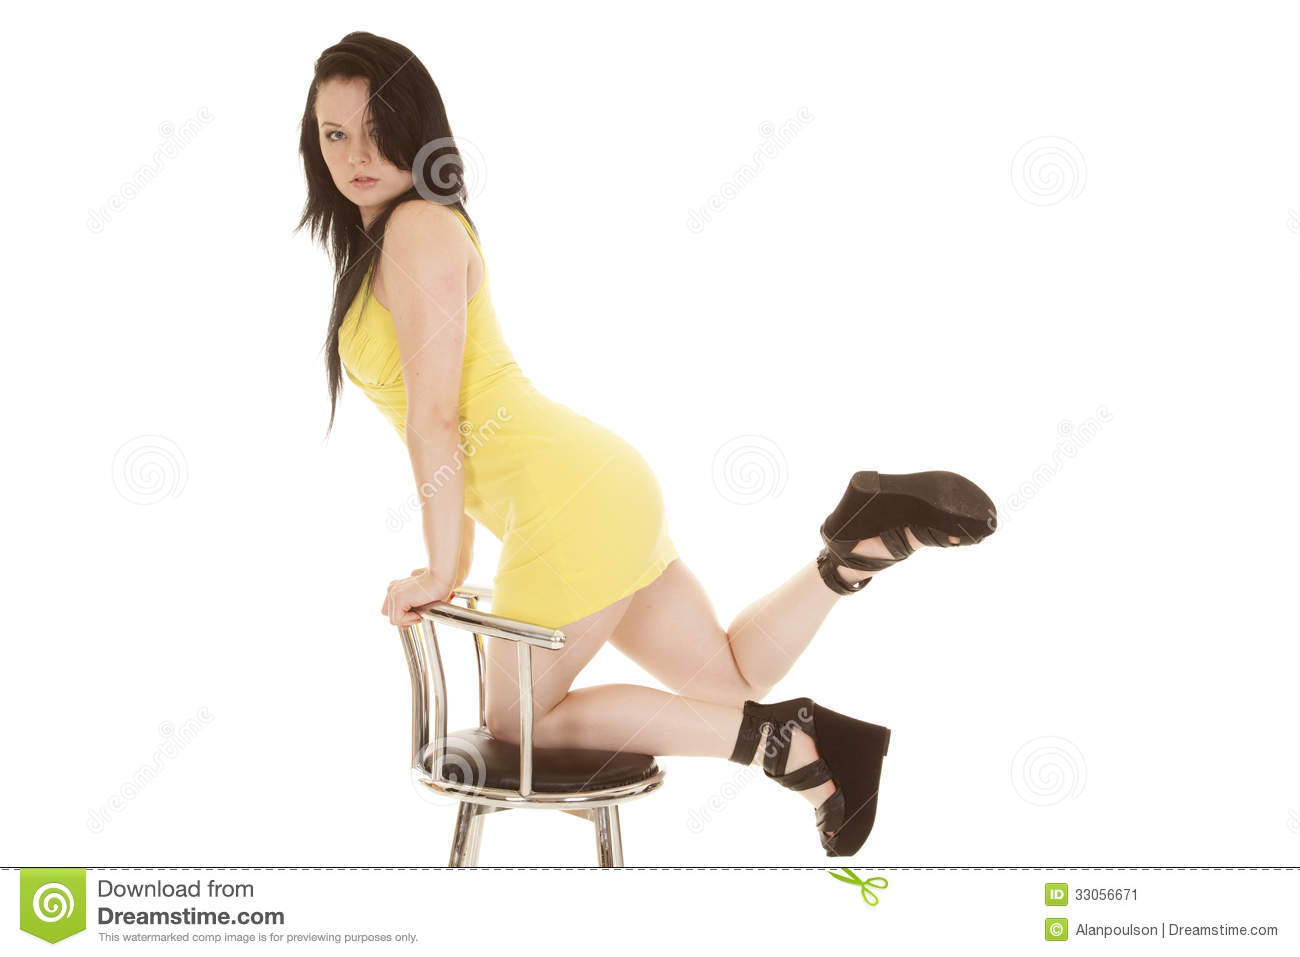 Woman yellow short dress kneeling on chair Stock Image. Businesswoman Kneeling Chair Stock Photos  Images    Pictures   31